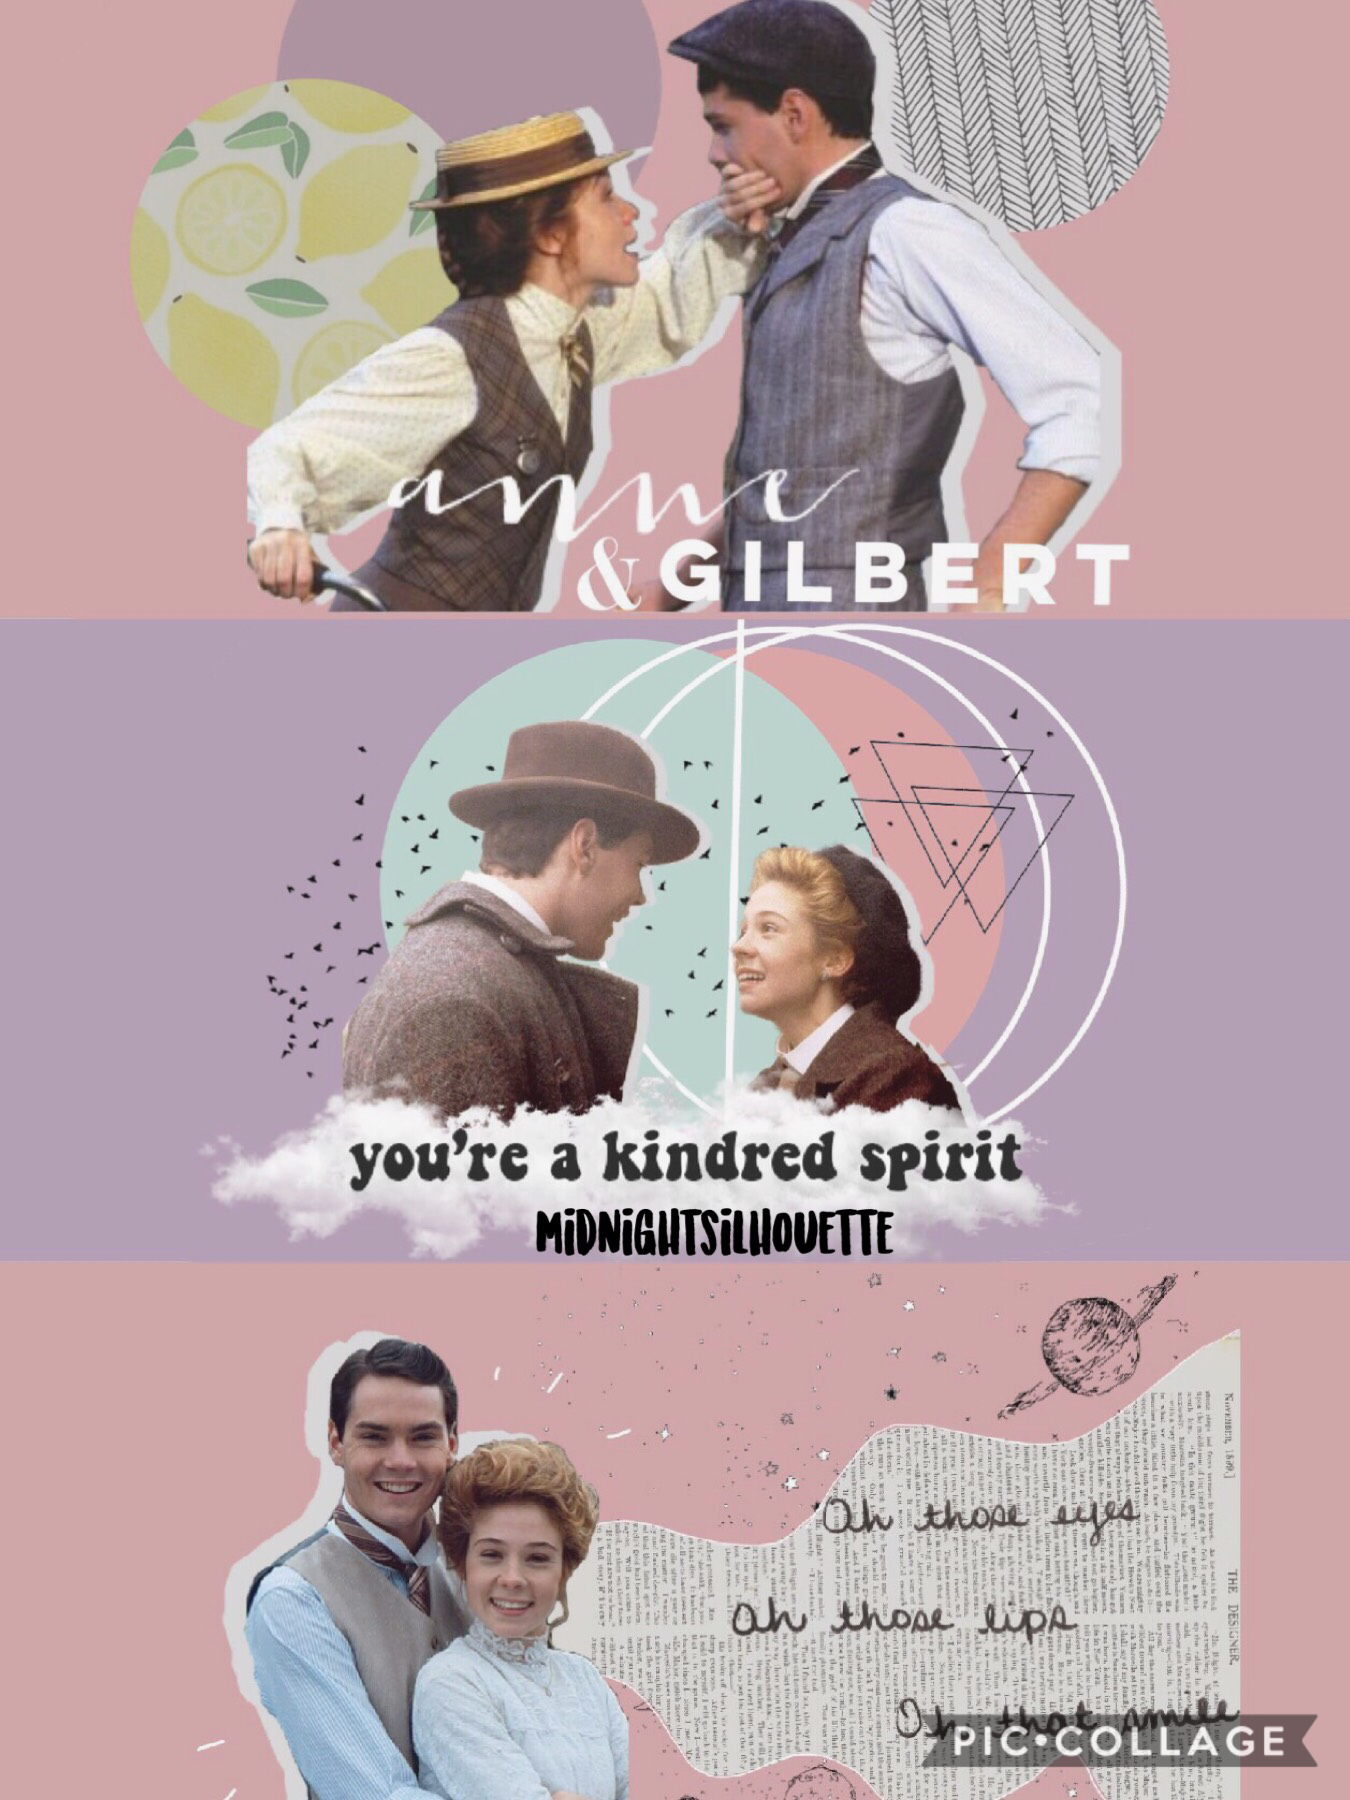 an anne and gilbert graphic edit - what do you think?